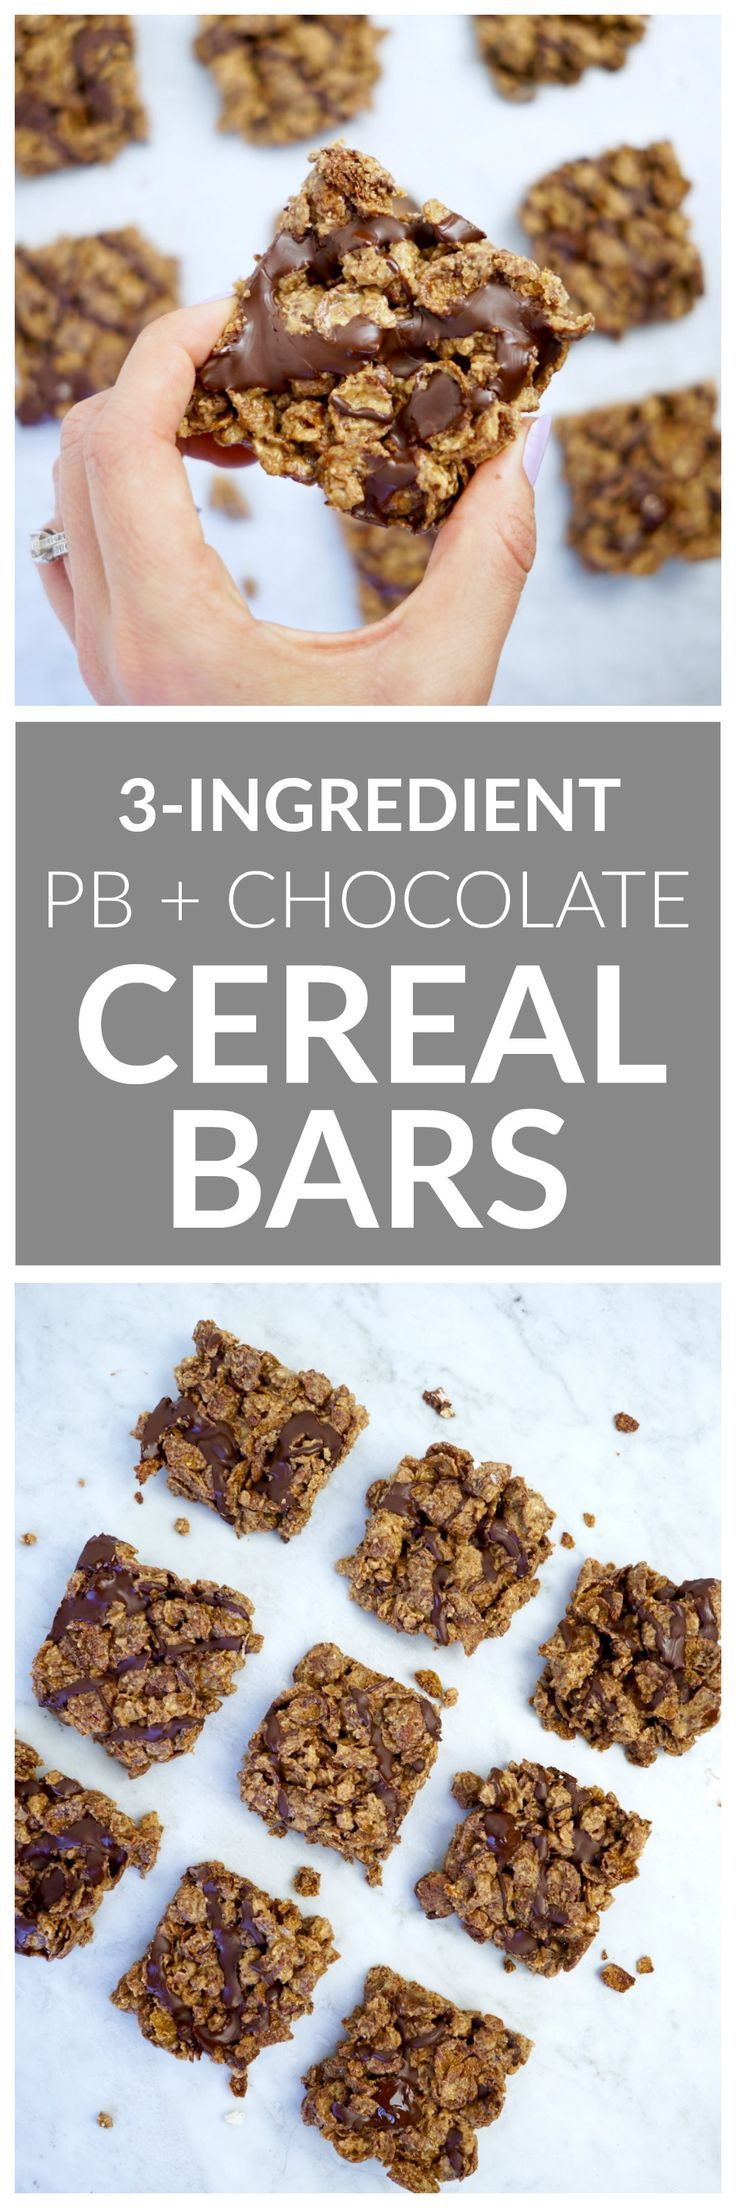 3 Ingredient Peanut Butter Chocolate Cereal Bars